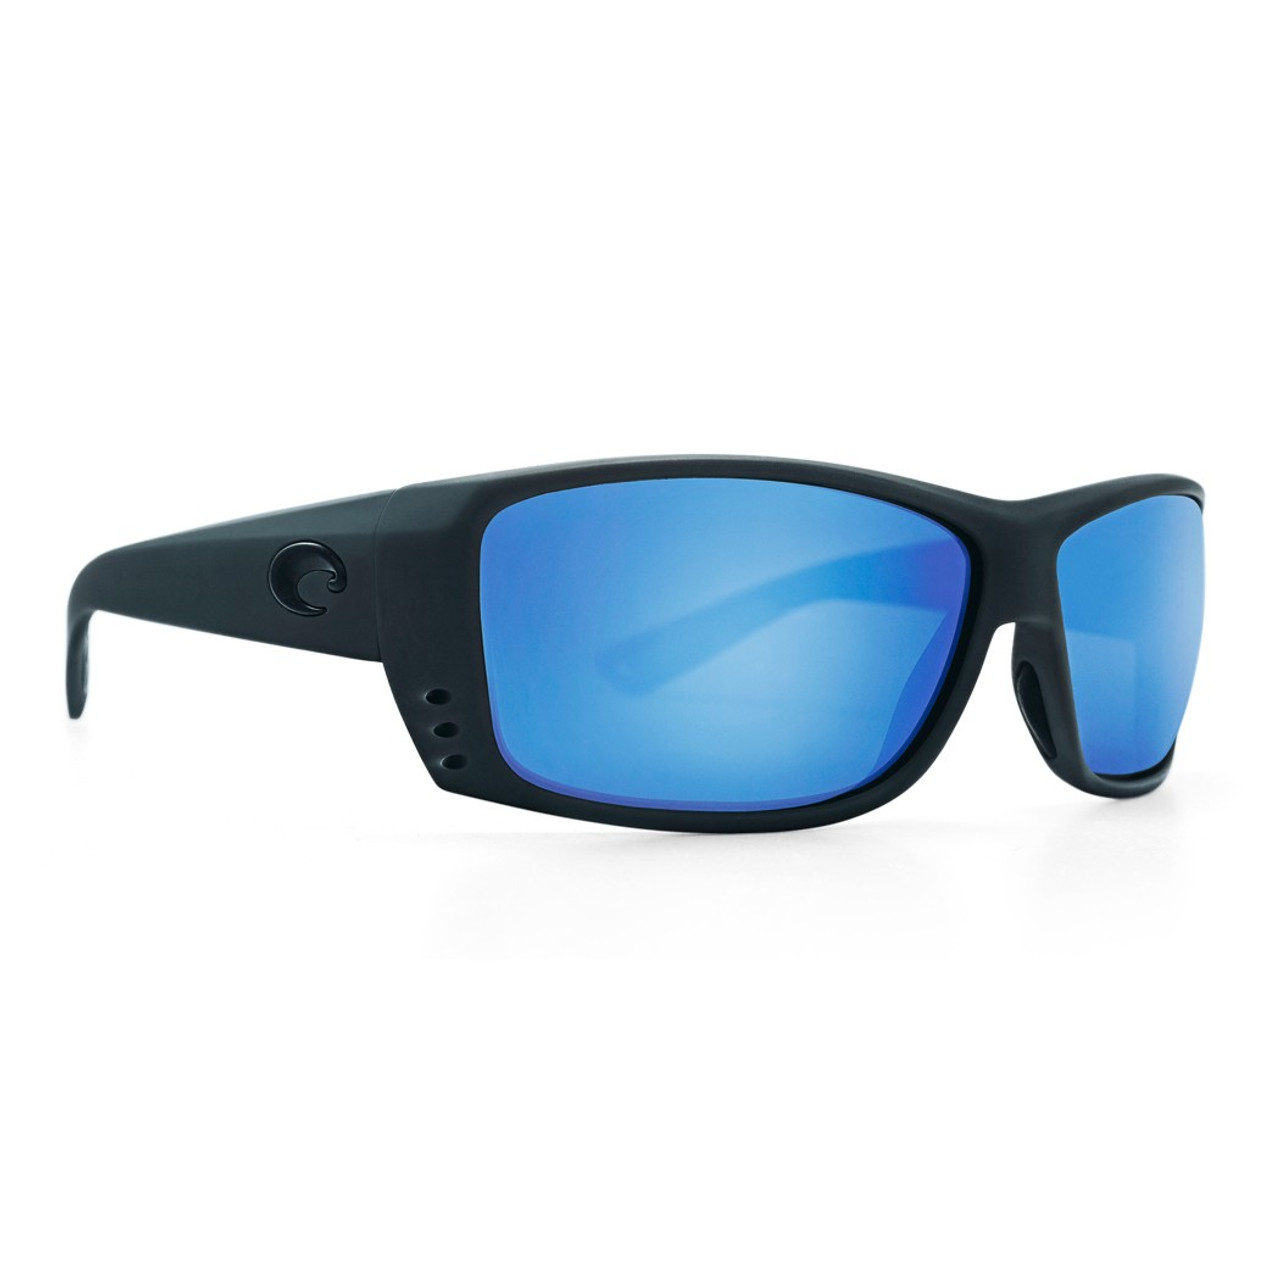 51f429b71d Costa Sunglasses - Cat Cay OCEARCH - Matte Gray Blue Mirror Glass - Surf  and Dirt